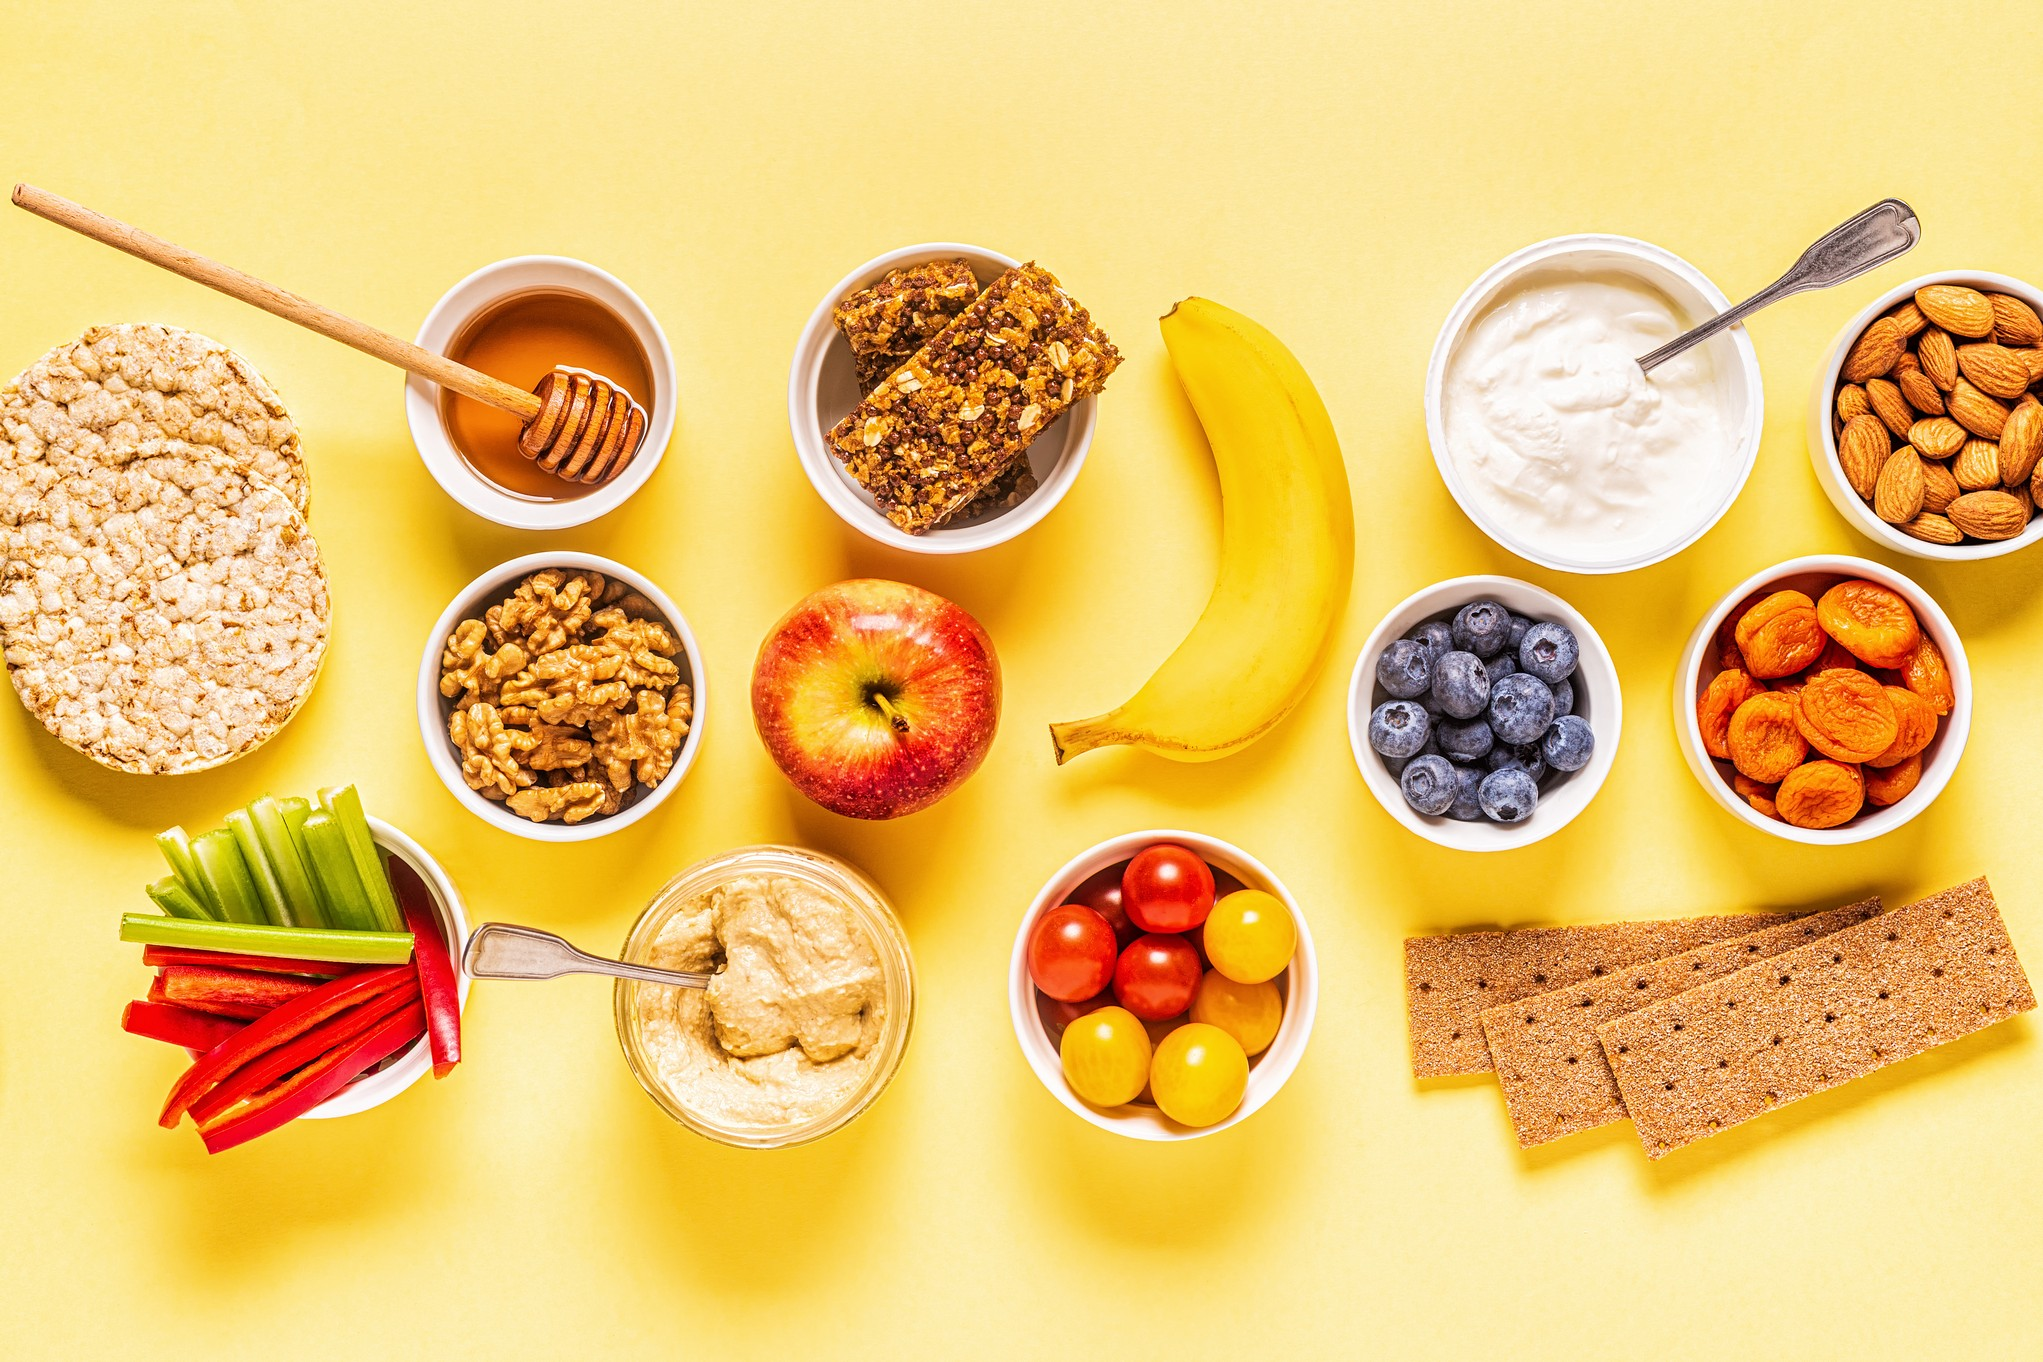 San Francisco Bay Area Alternative Snack Choices | Better-for-You | Healthy Break Room